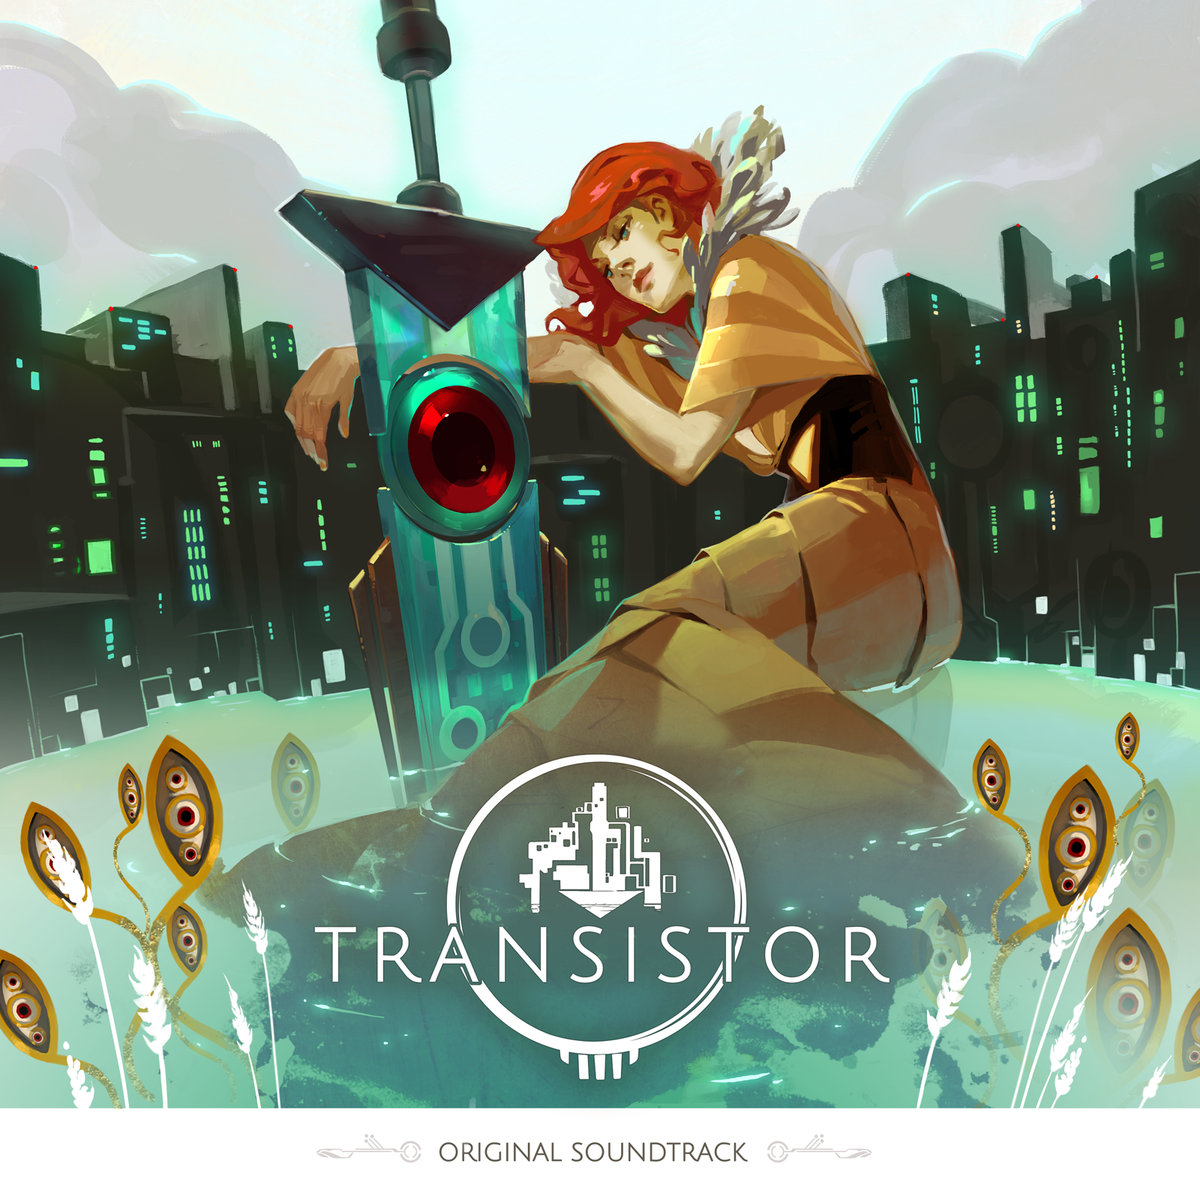 The Transistor Soundtrack Was Nominated For Several Awards